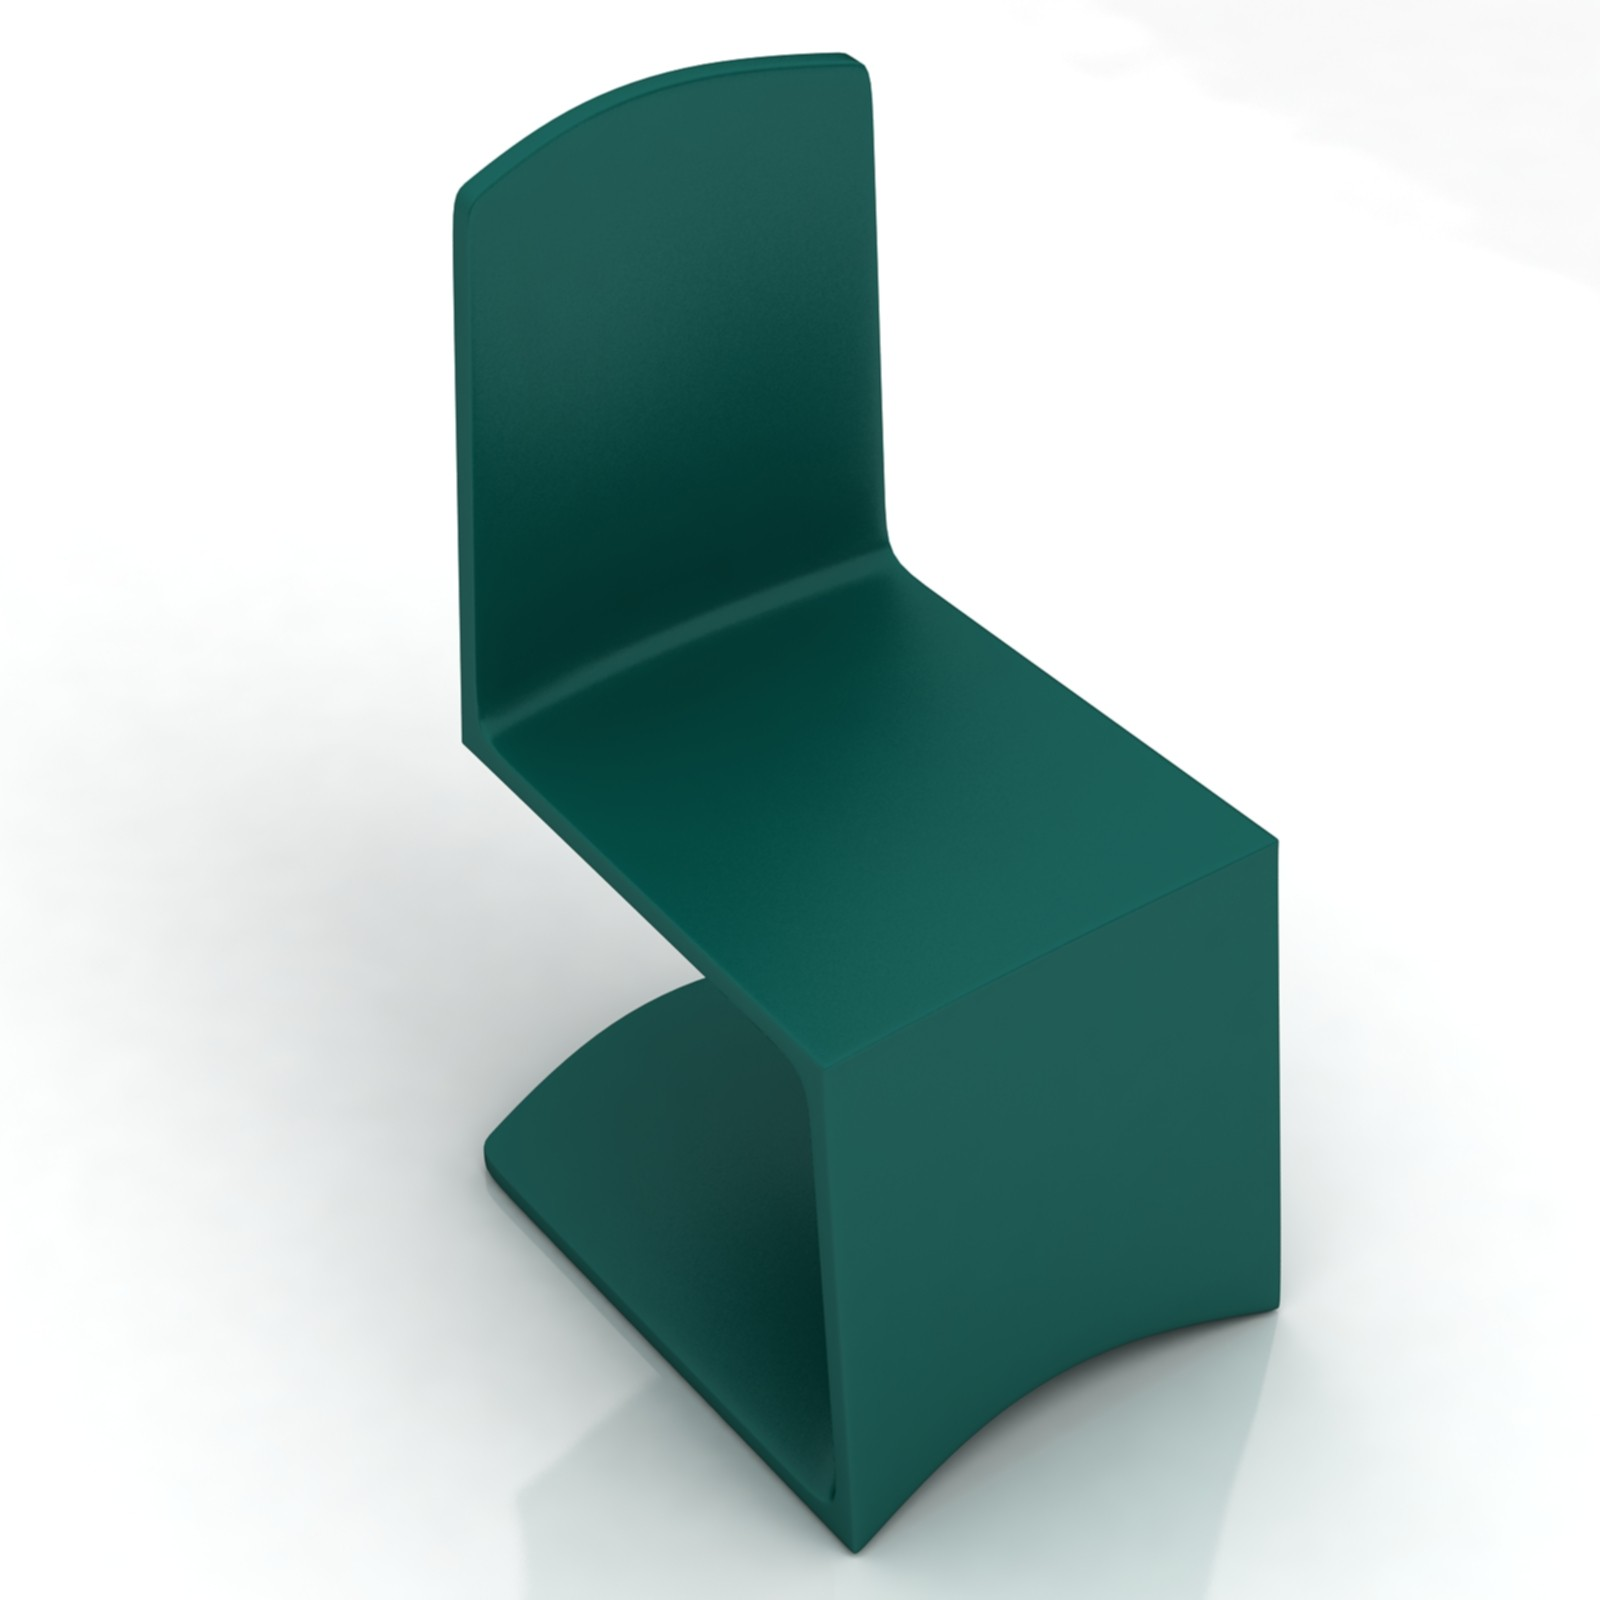 Design chair final render II.jpg